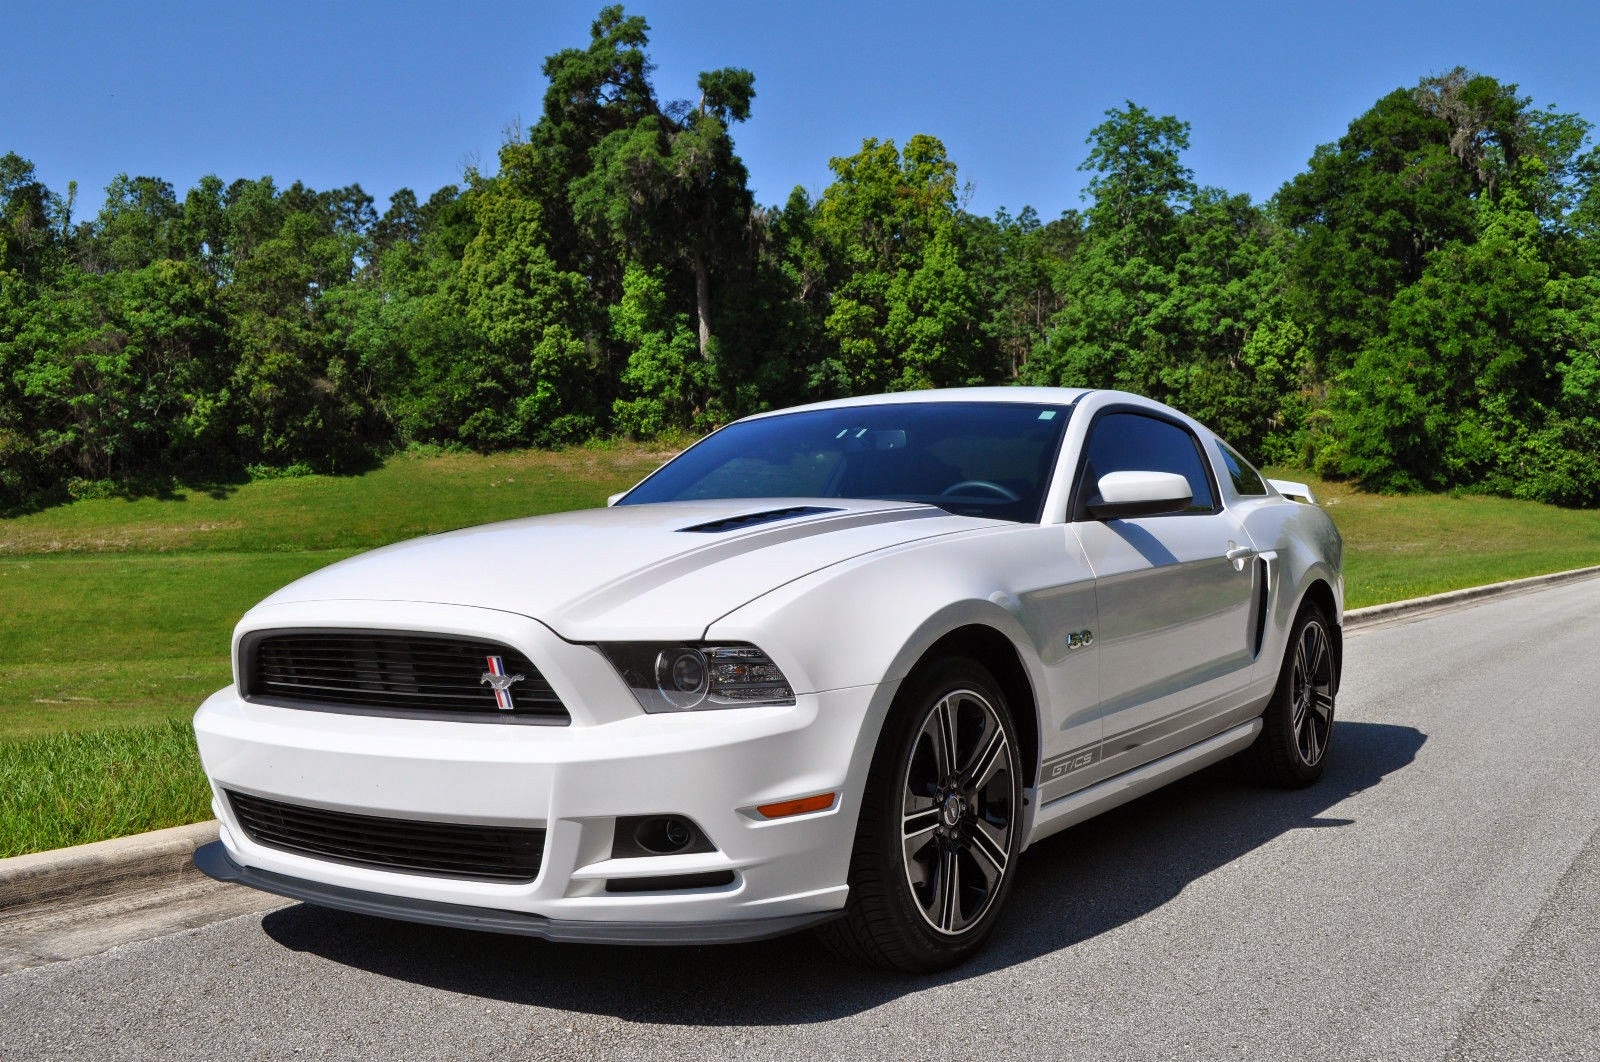 2013 mustang gt california special for sale american muscle cars